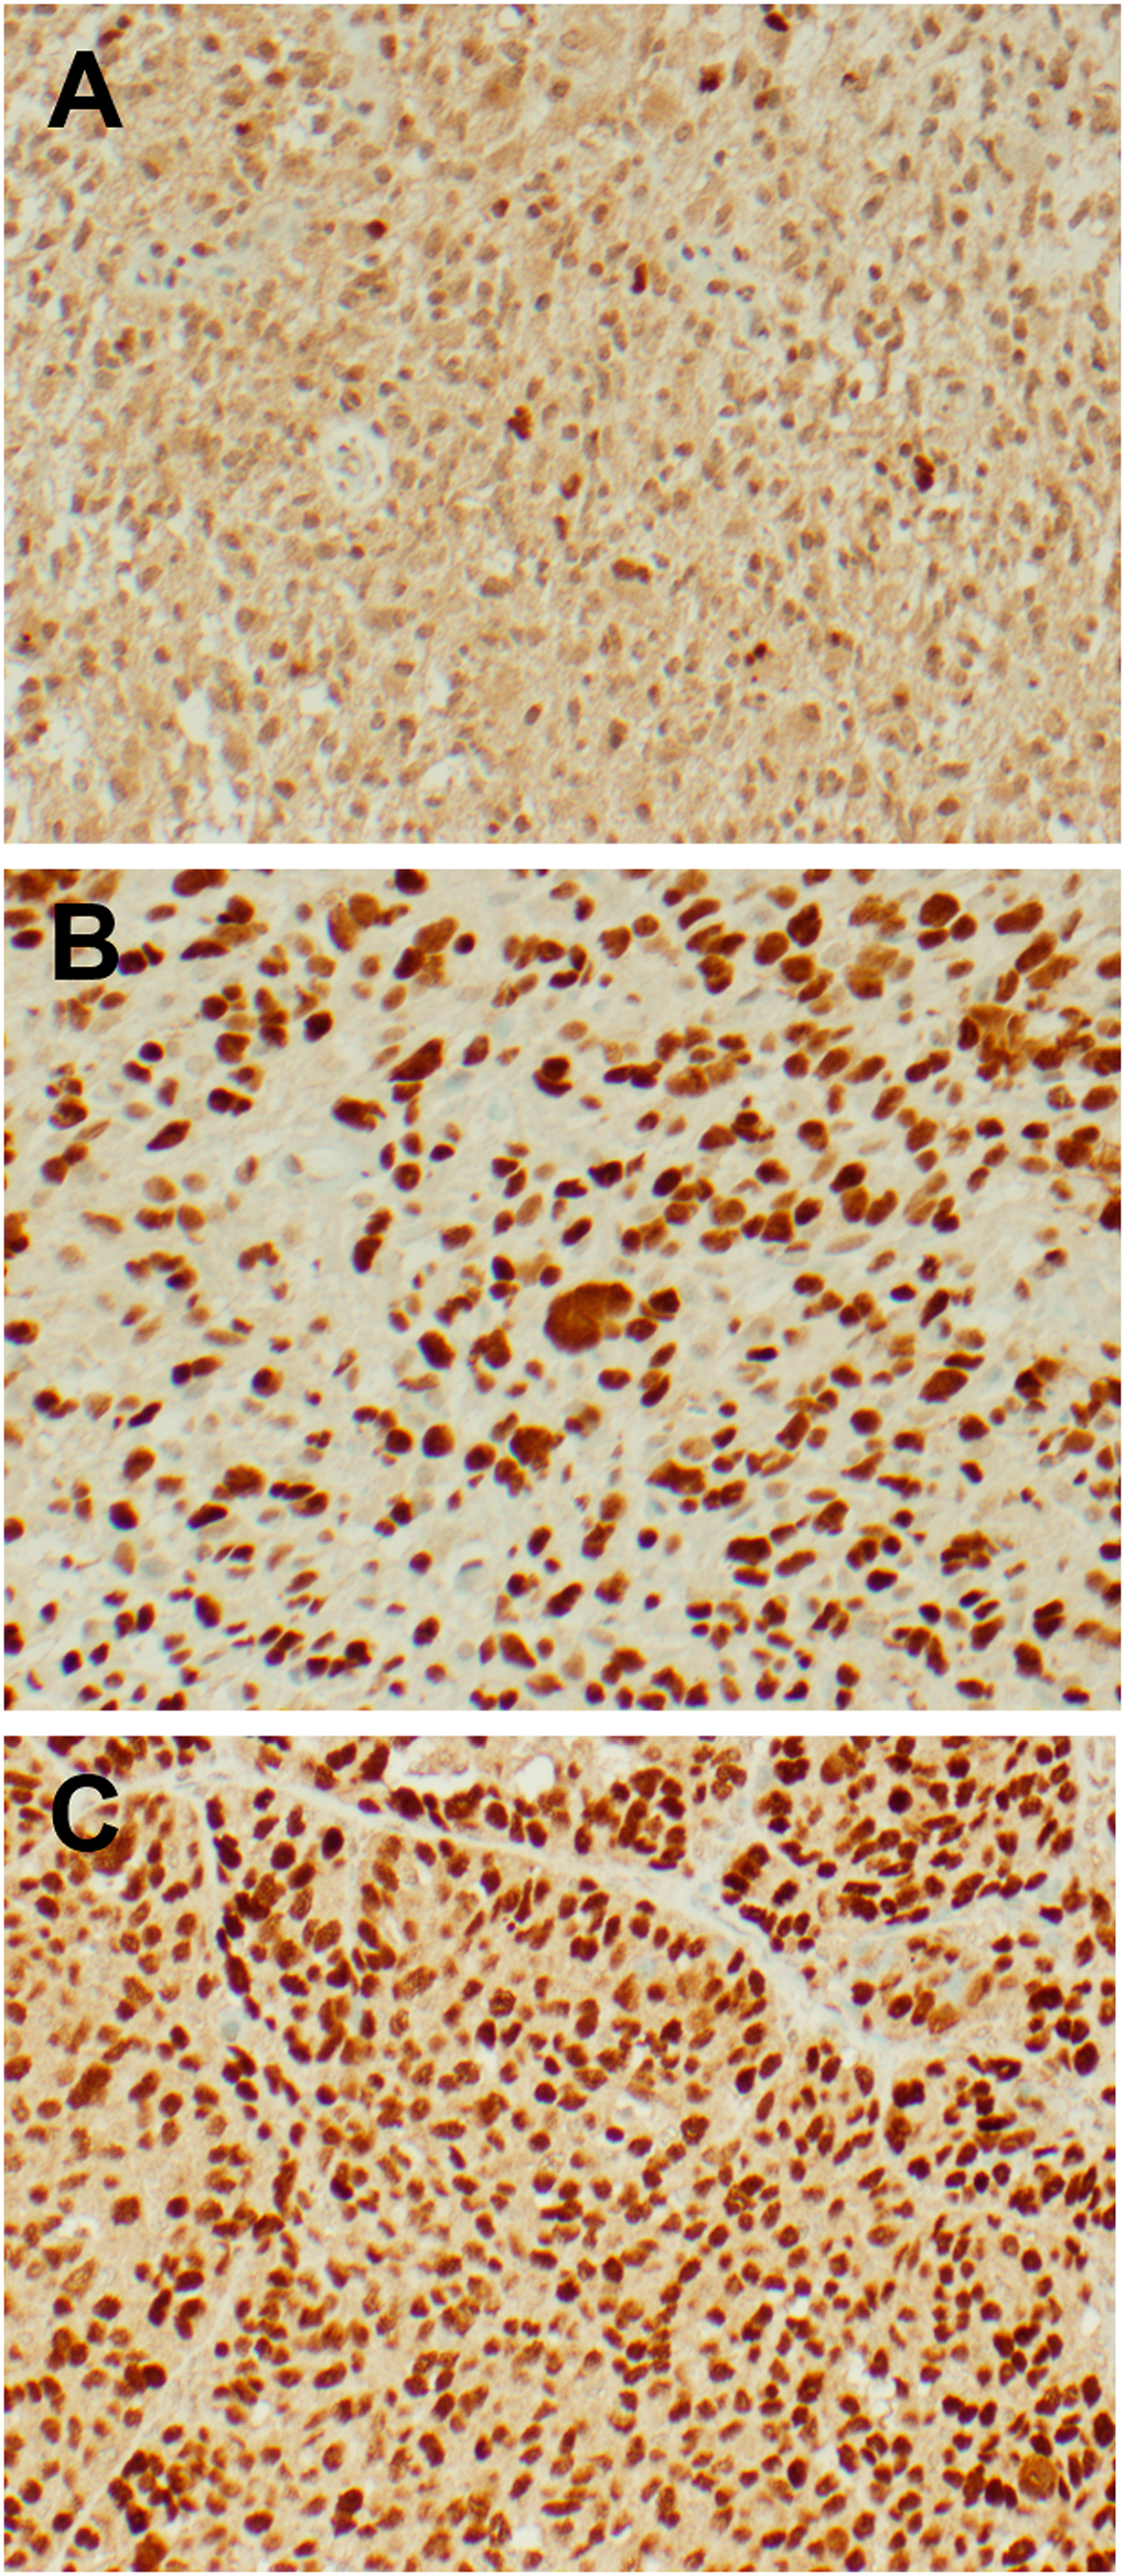 Representative IHC images from freshly resected tumor samples.